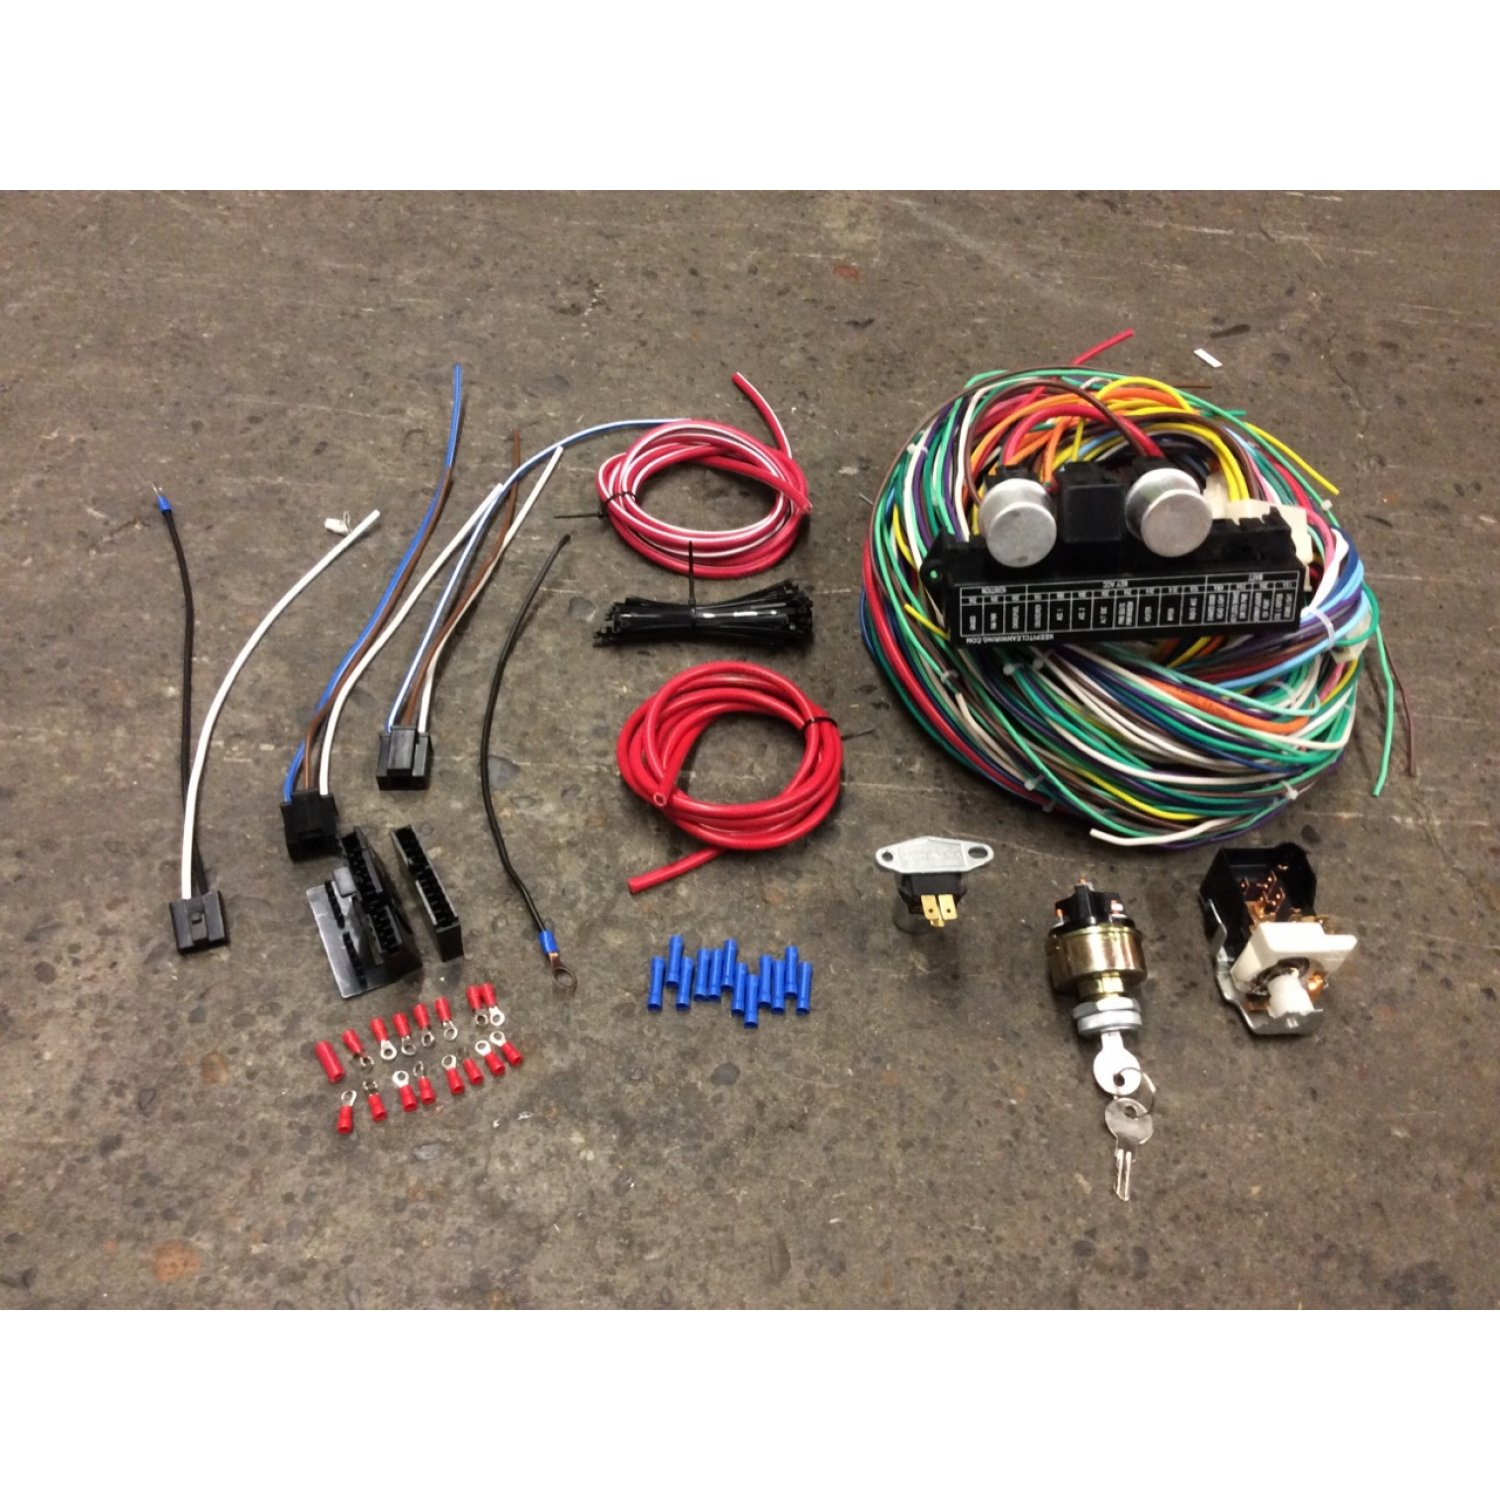 [QNCB_7524]  1940-46 Chevy GMC Pickup Full Wiring Harness & Headlight Switch Upgrade Kit  T16 | eBay | Chevy Truck Wiring Harness Ebay |  | eBay